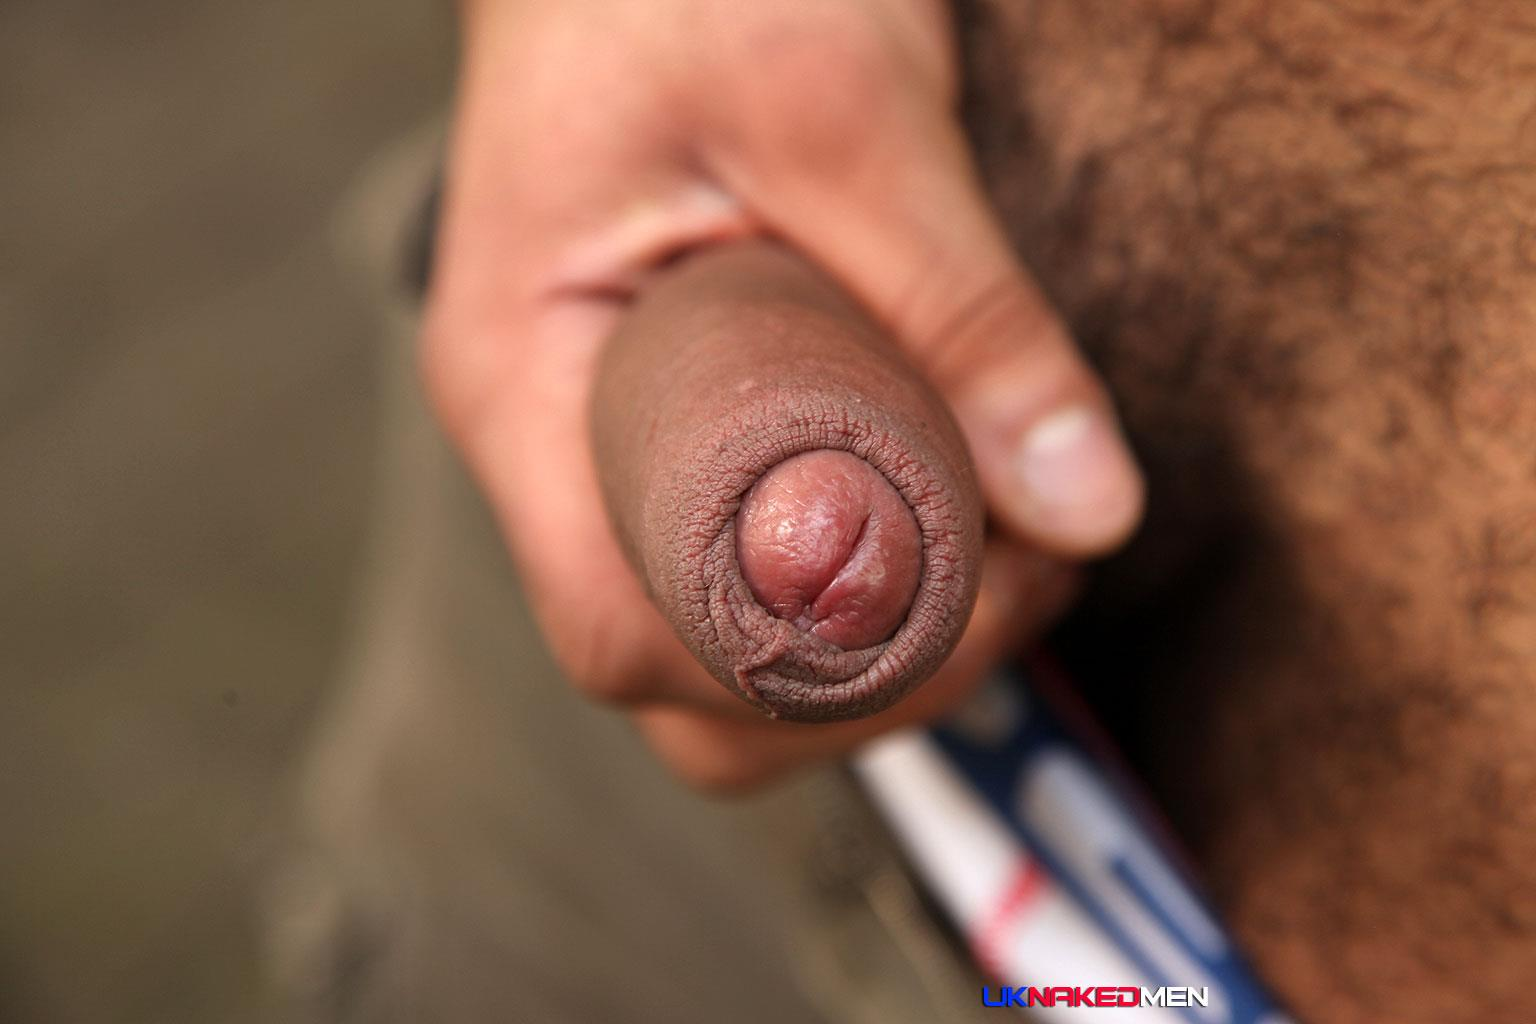 UK-Naked-Men-Fuck-Loving-Criminals-Episode-4-Tony-Thorn-and-Fabio-Lopez-Hairy-Arab-Fucking-A-Smooth-Guy-Amateur-Gay-Porn-22 Hairy Muscle Stud Tony Thorn Fucking Smooth Muscle Hunk Fabio Lopez